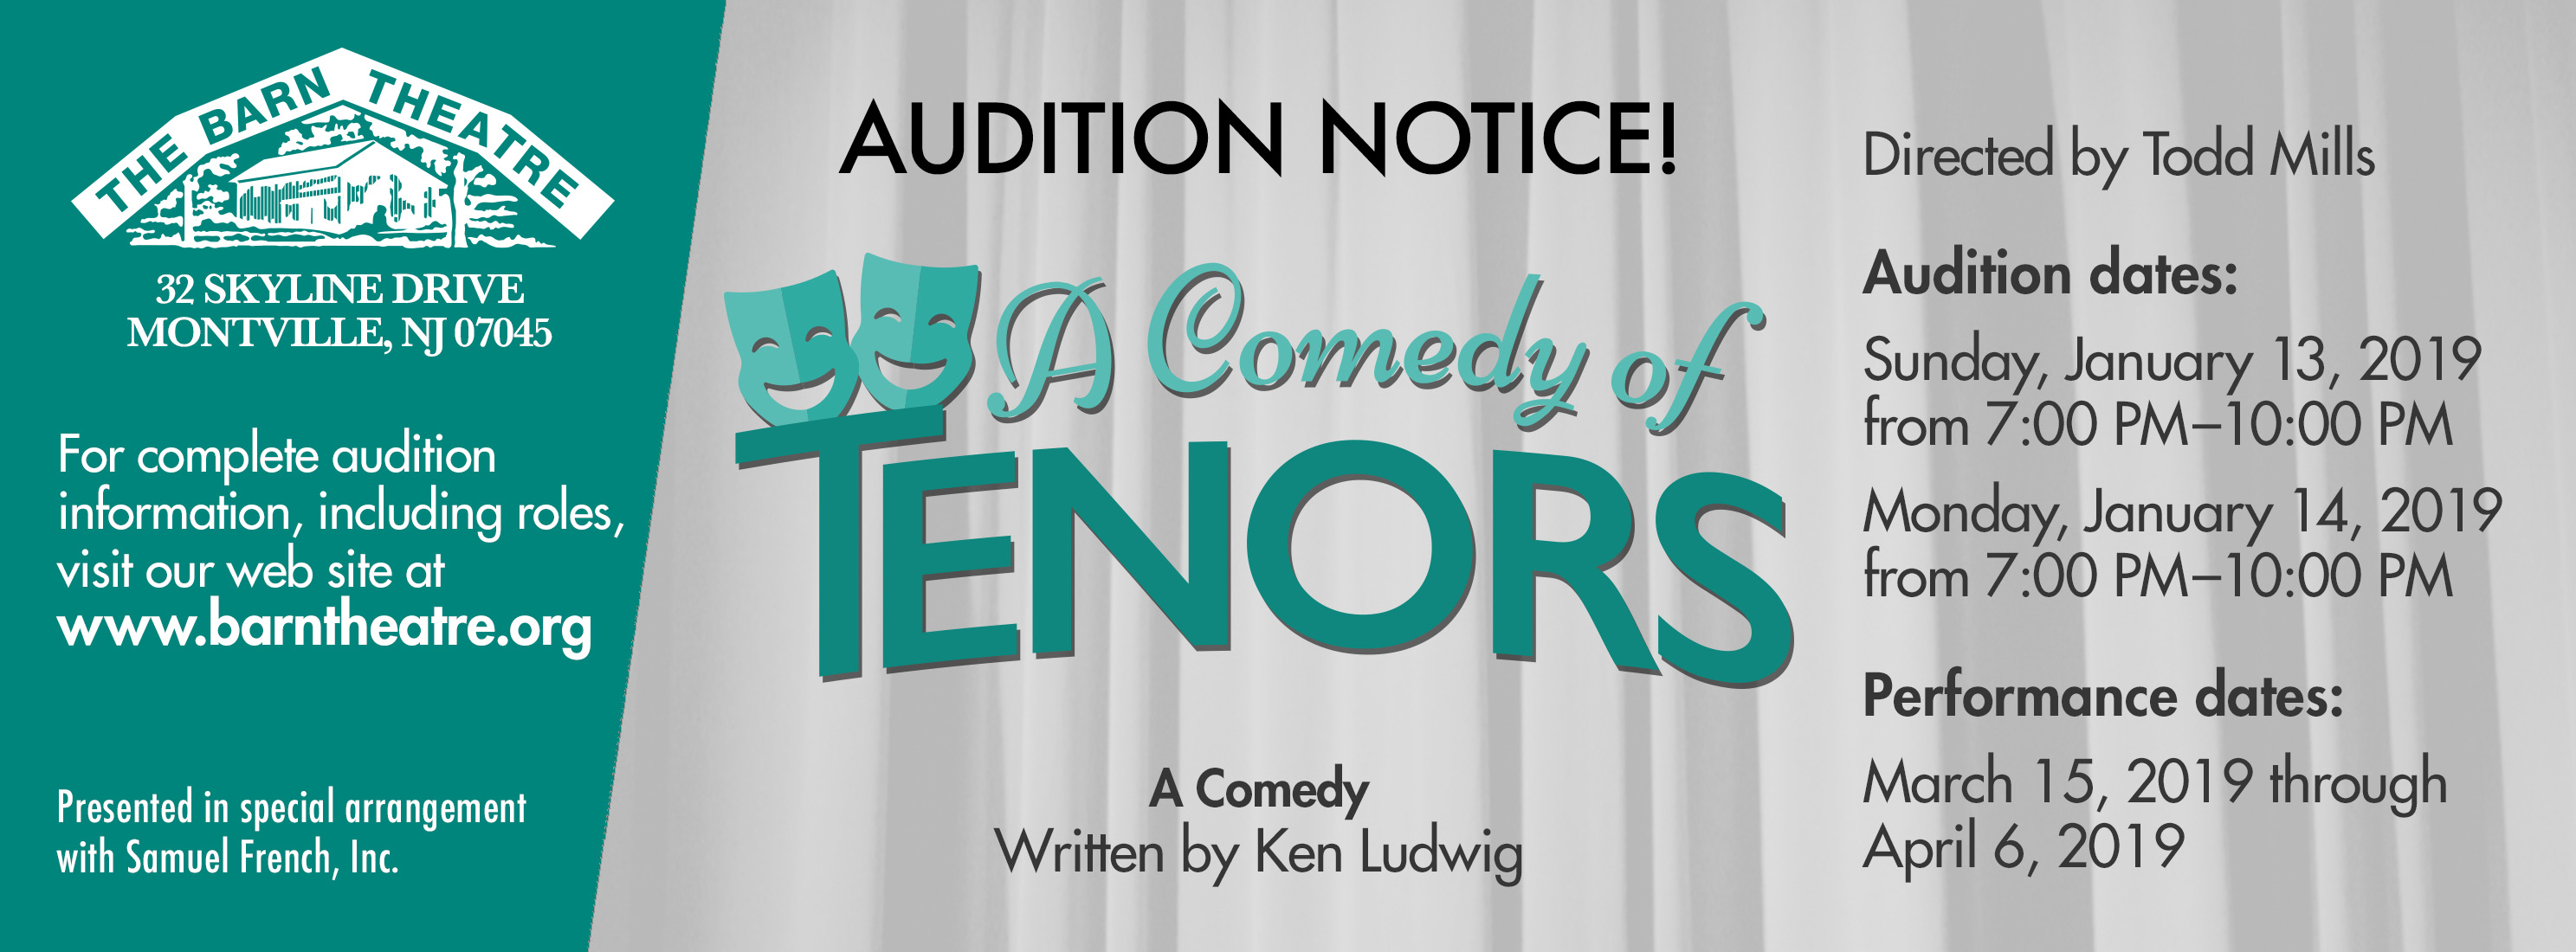 A Comedy of Tenors Auditions